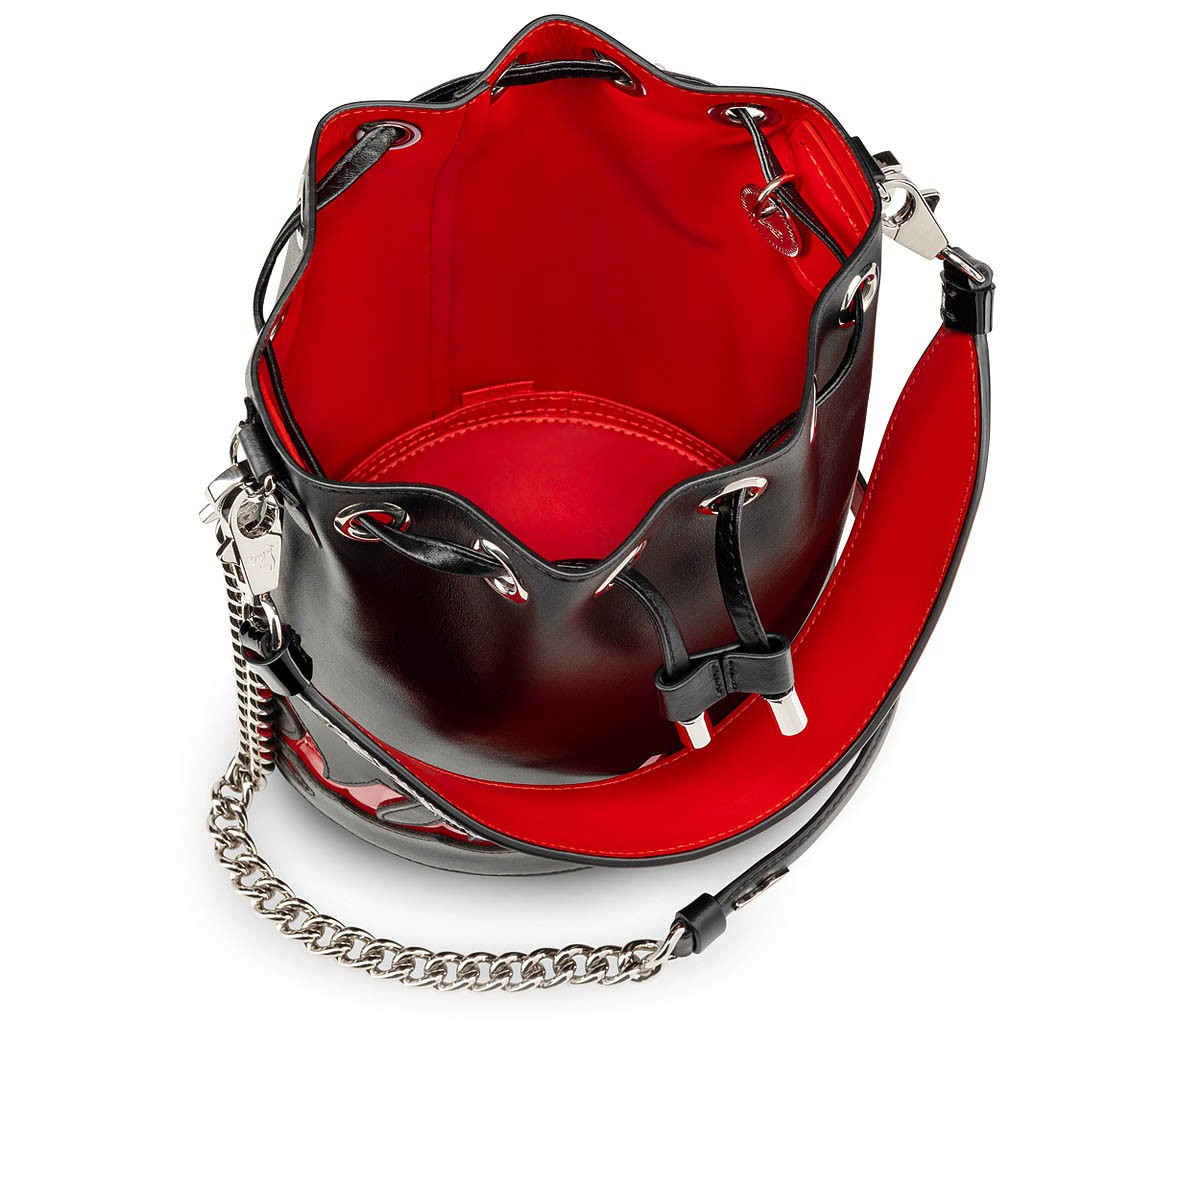 Bags - Marie Jane Bucket Large - Christian Louboutin